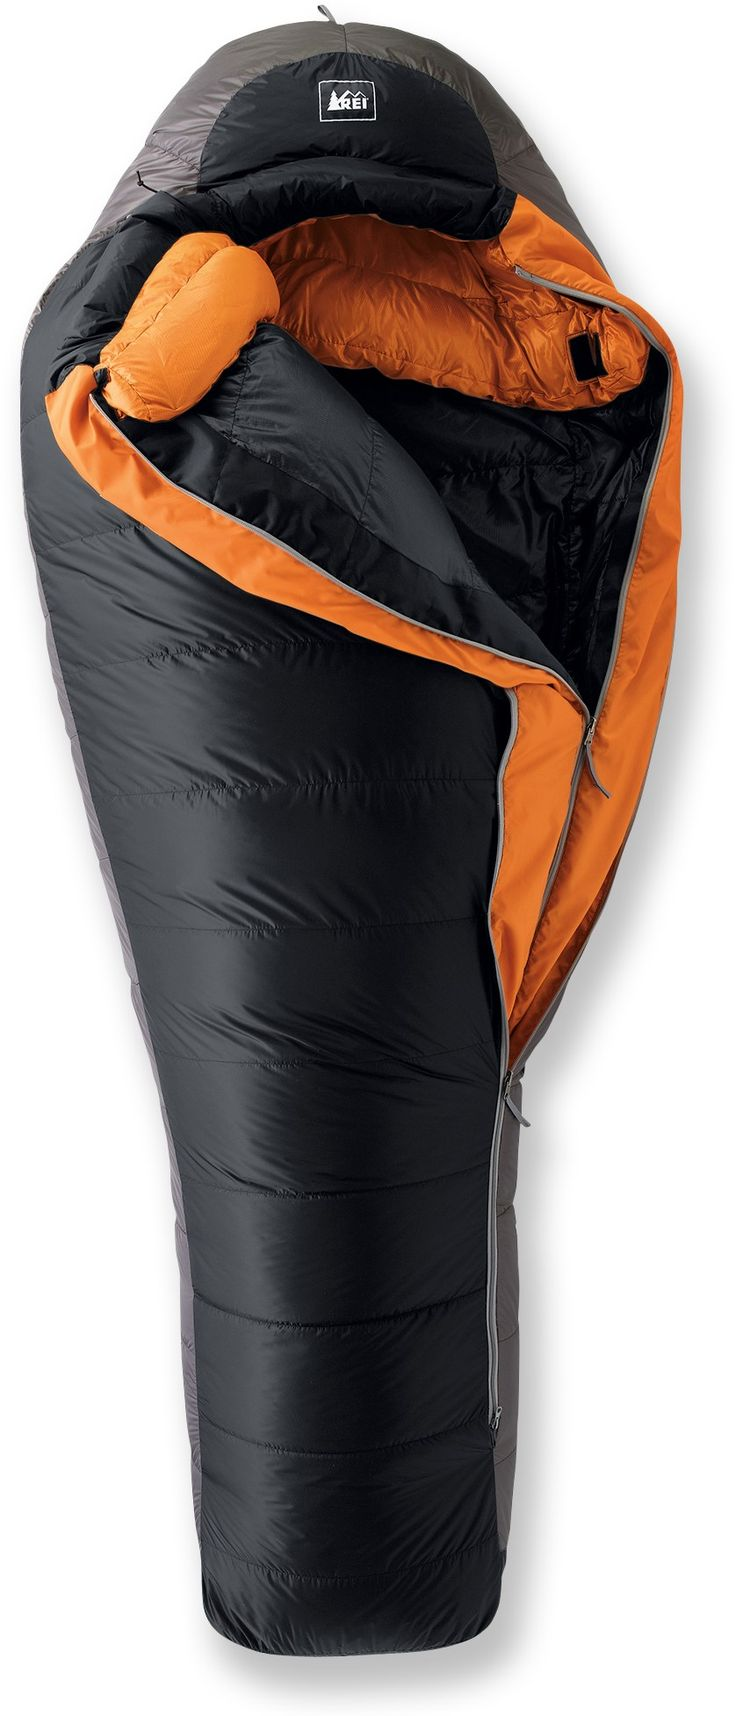 REI Expedition -20 Sleeping Bag     I used this all last year in Montana mountain winter.  The only time I was cold was on a survival night without a sleeping pad or tent.